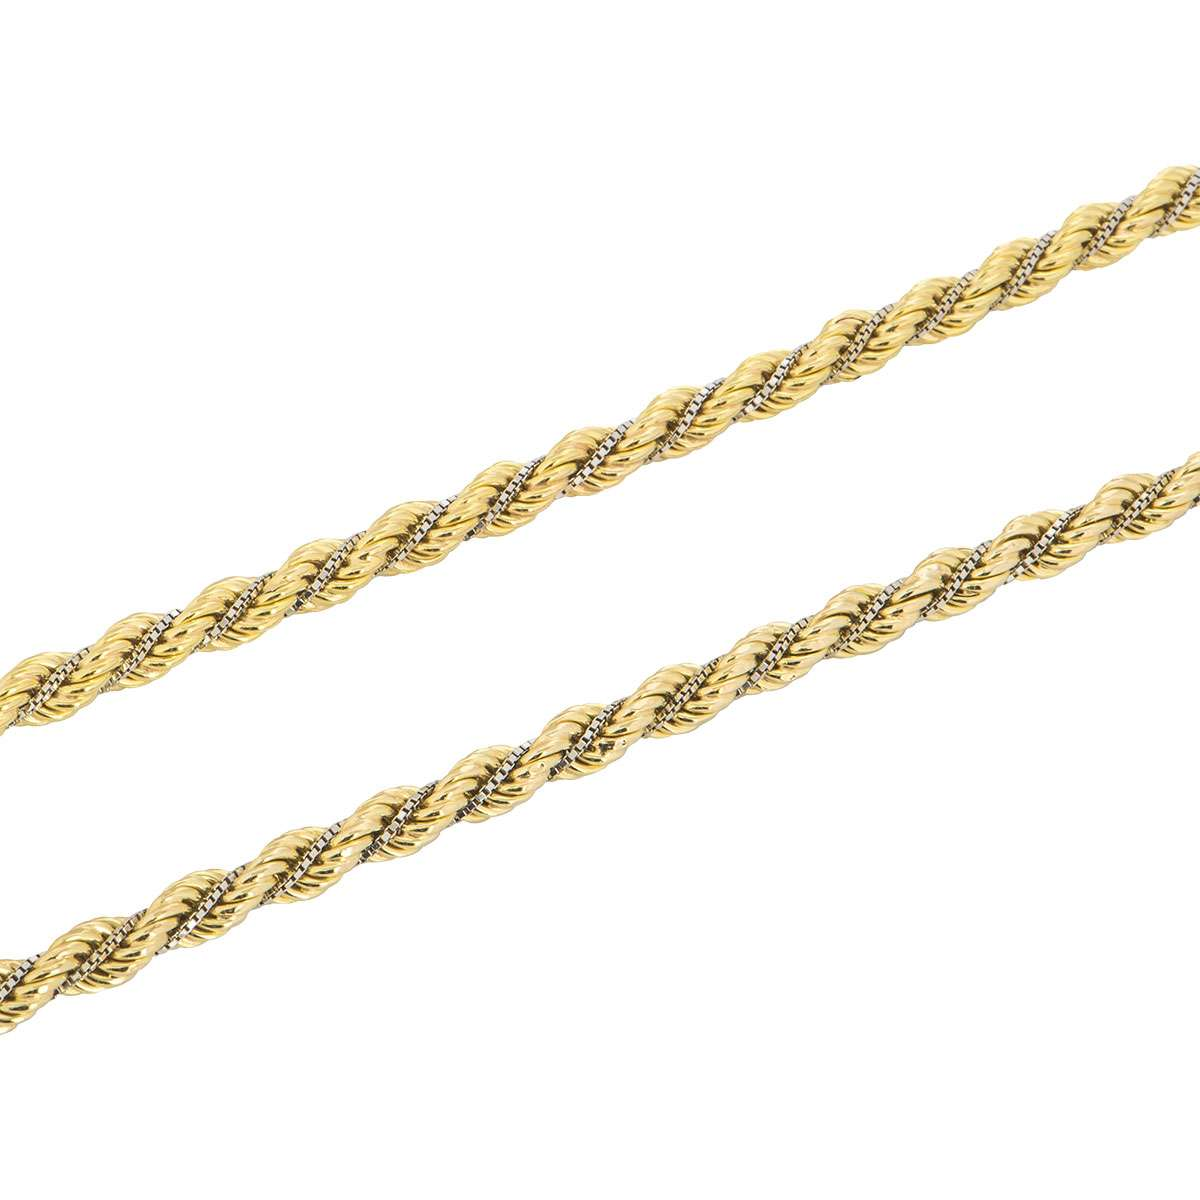 18k Two Colour Gold Necklace and Bracelet